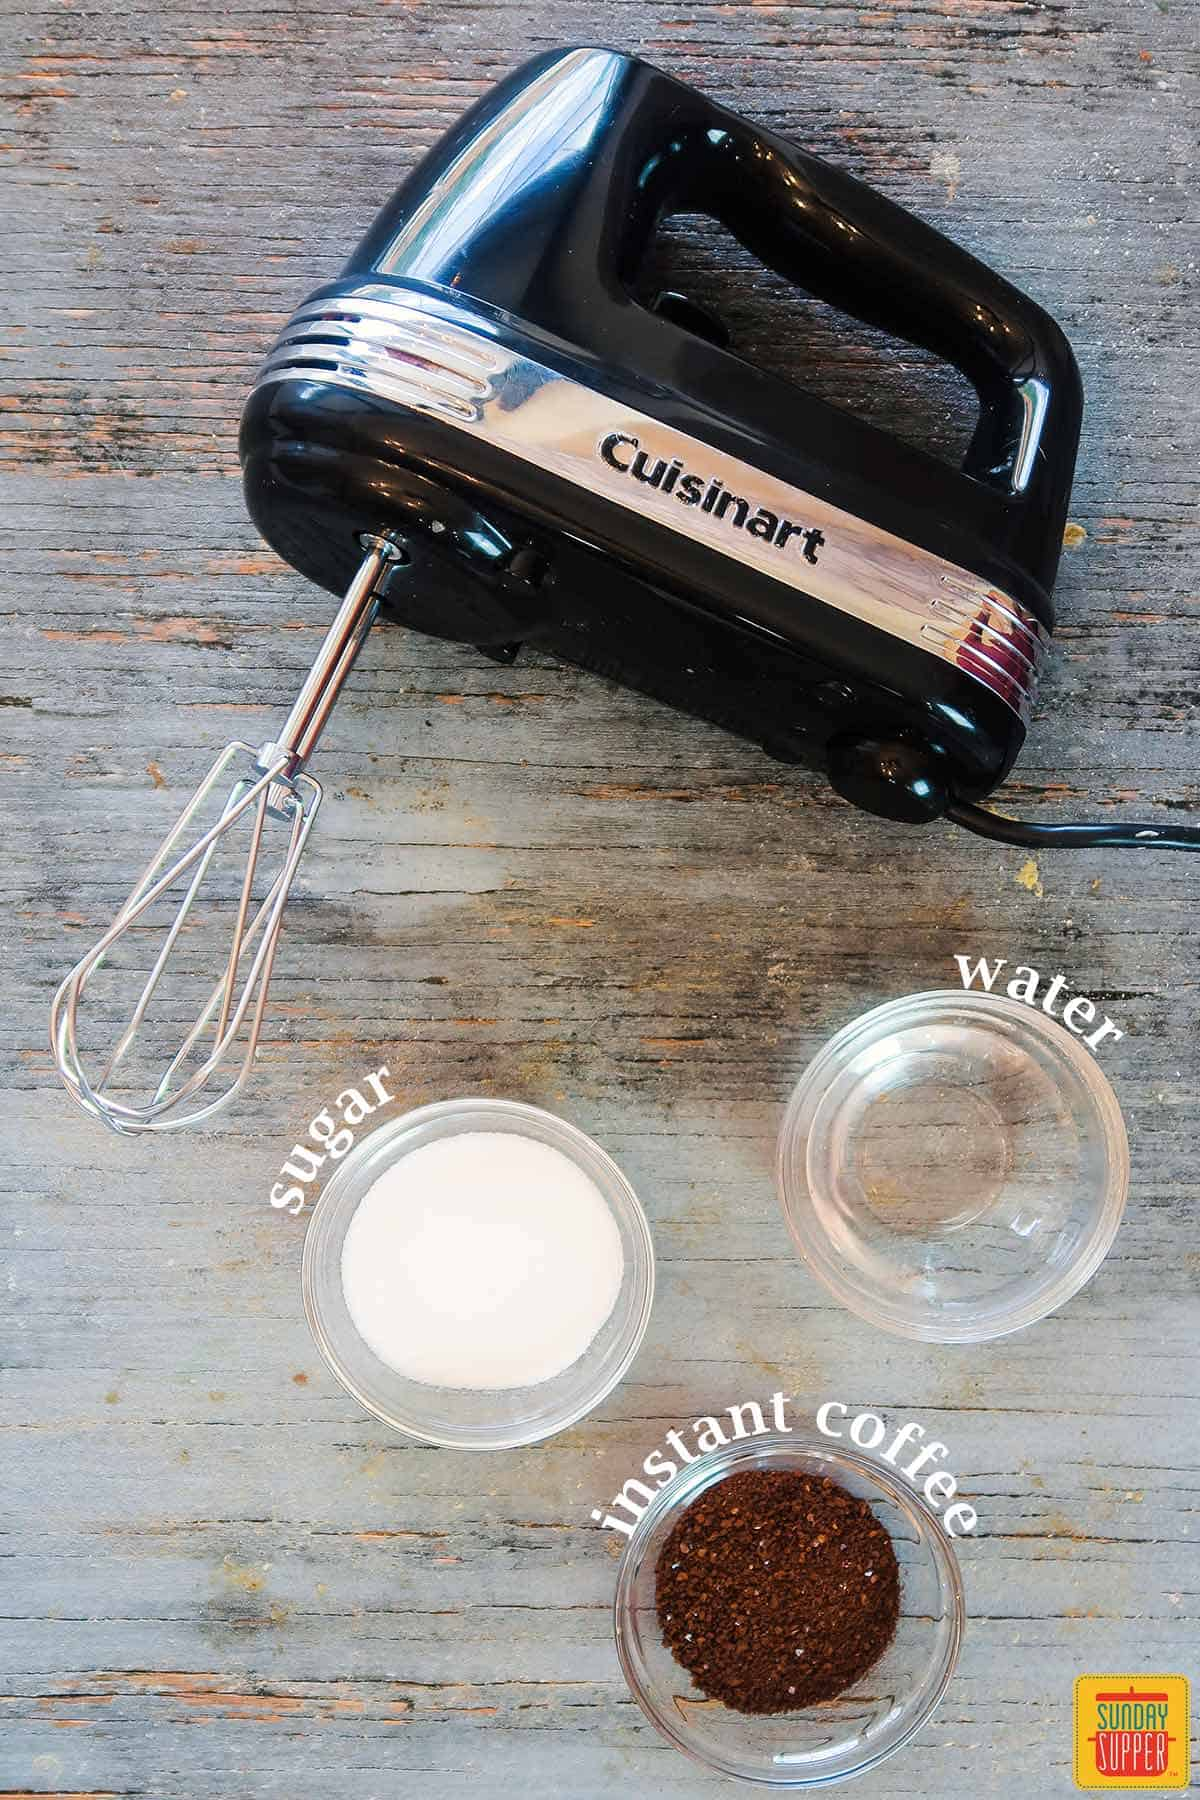 Ingredients for whipped coffee and electric mixer